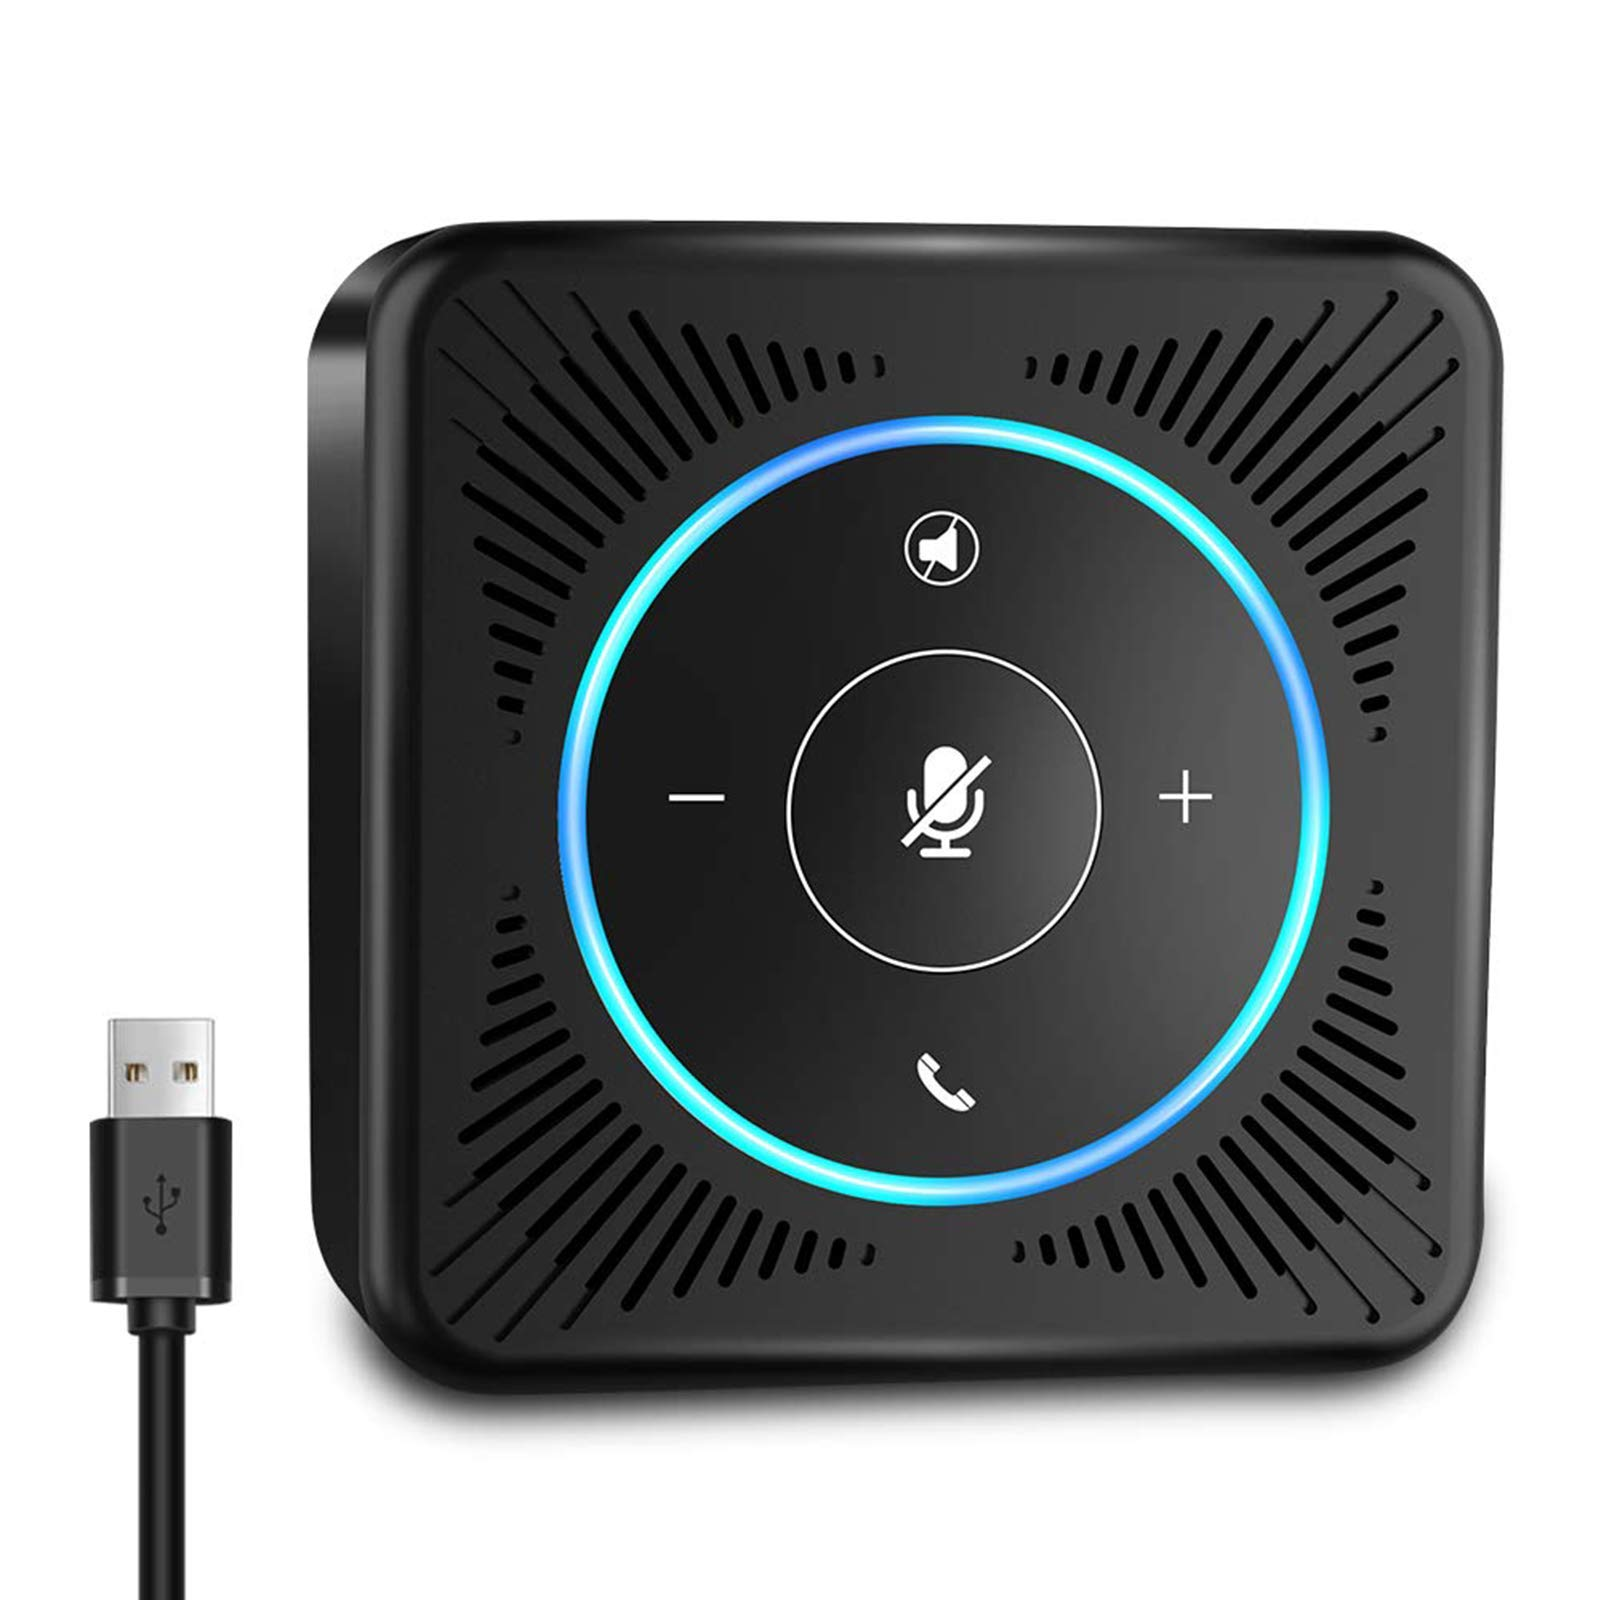 USB Speakerphone -M0 Conference Speaker for 4 People Business Conference Phone 360° Voice Pickup 4 AI Microphones USB Skype Speakerphone Conference Call Speaker Plug and Play